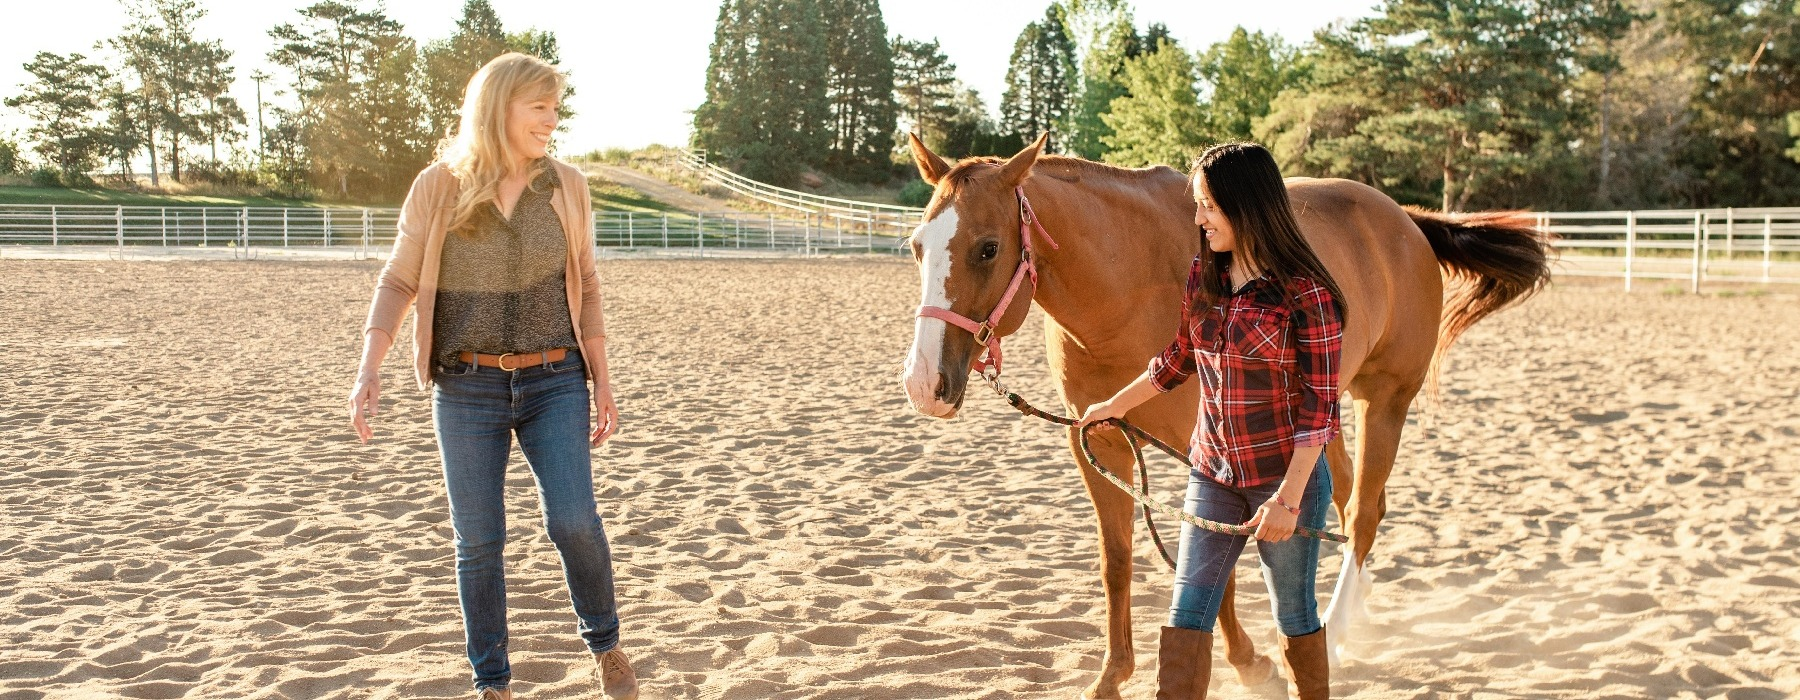 teen girl in equine therapy session